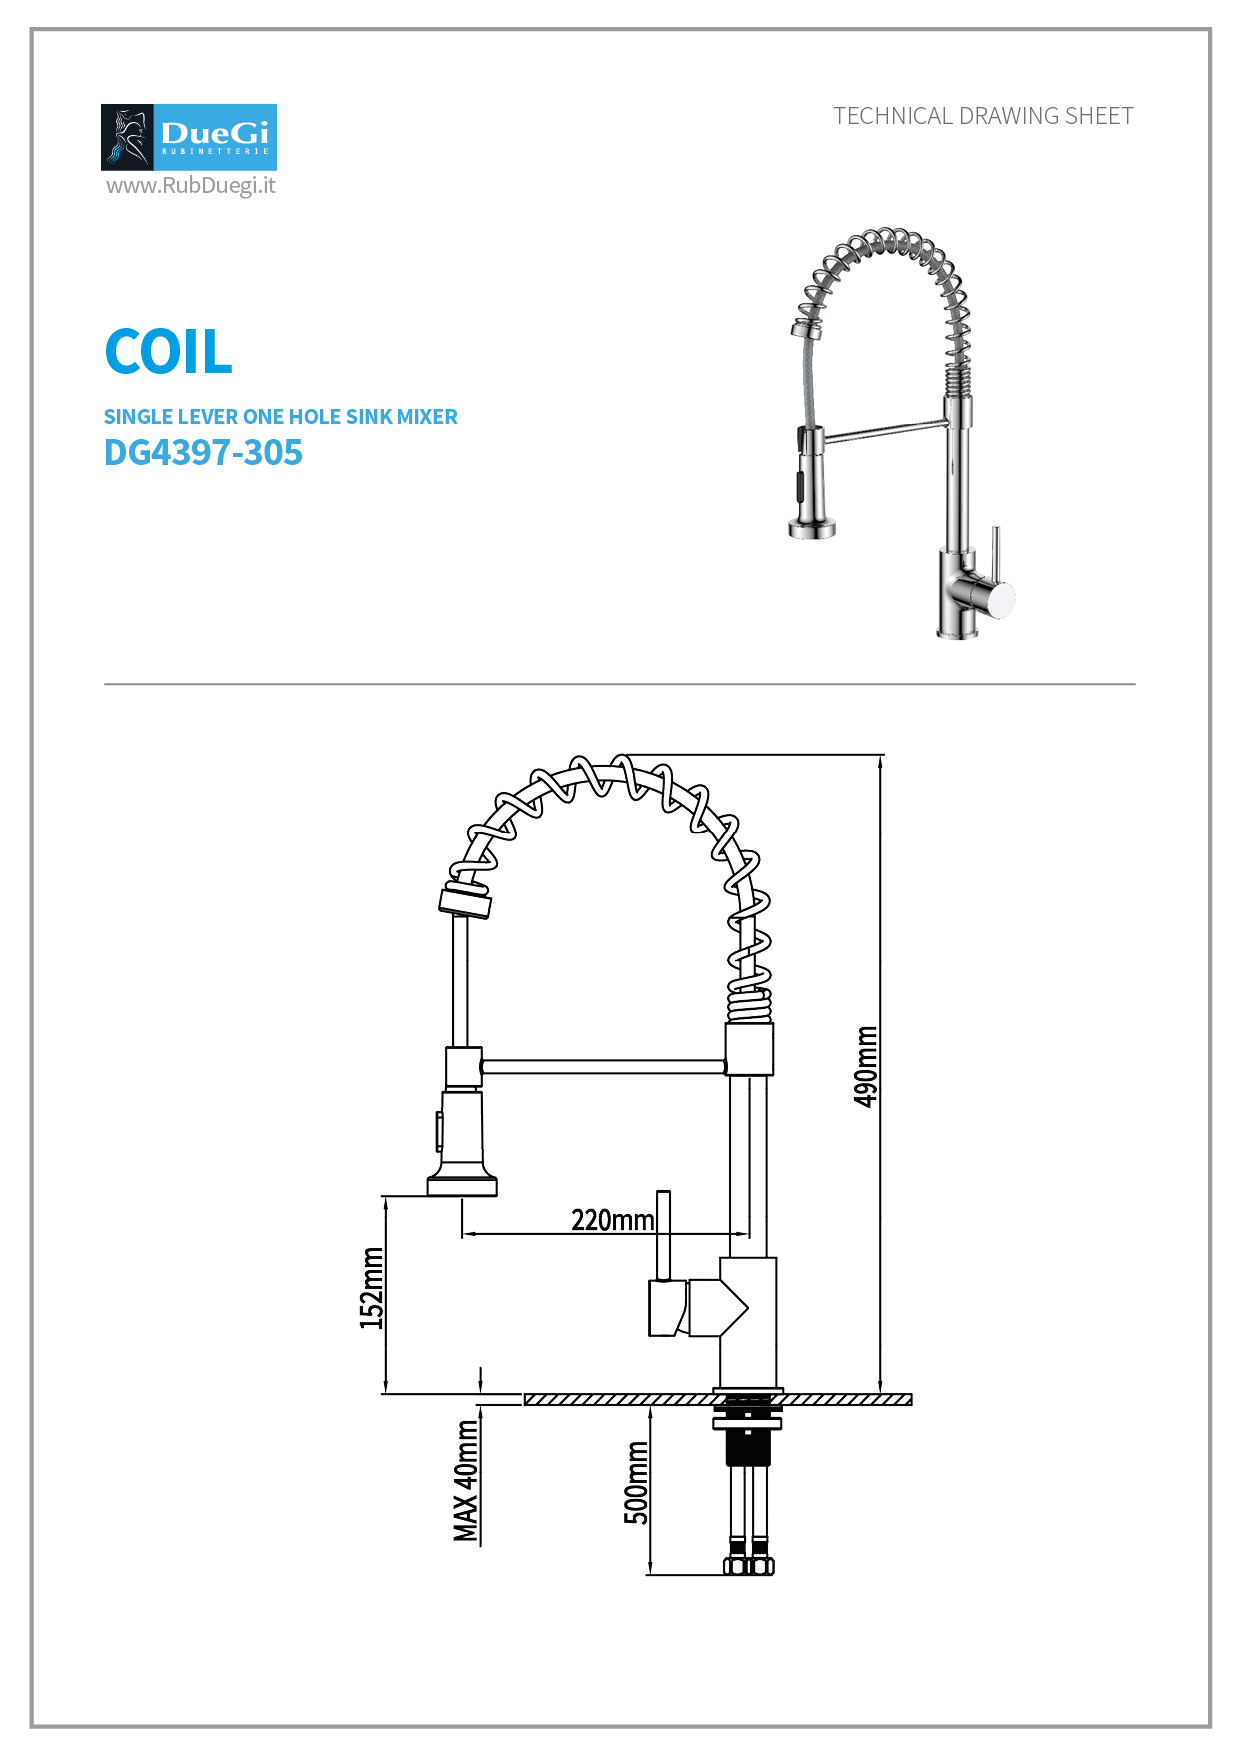 coil technical drawing